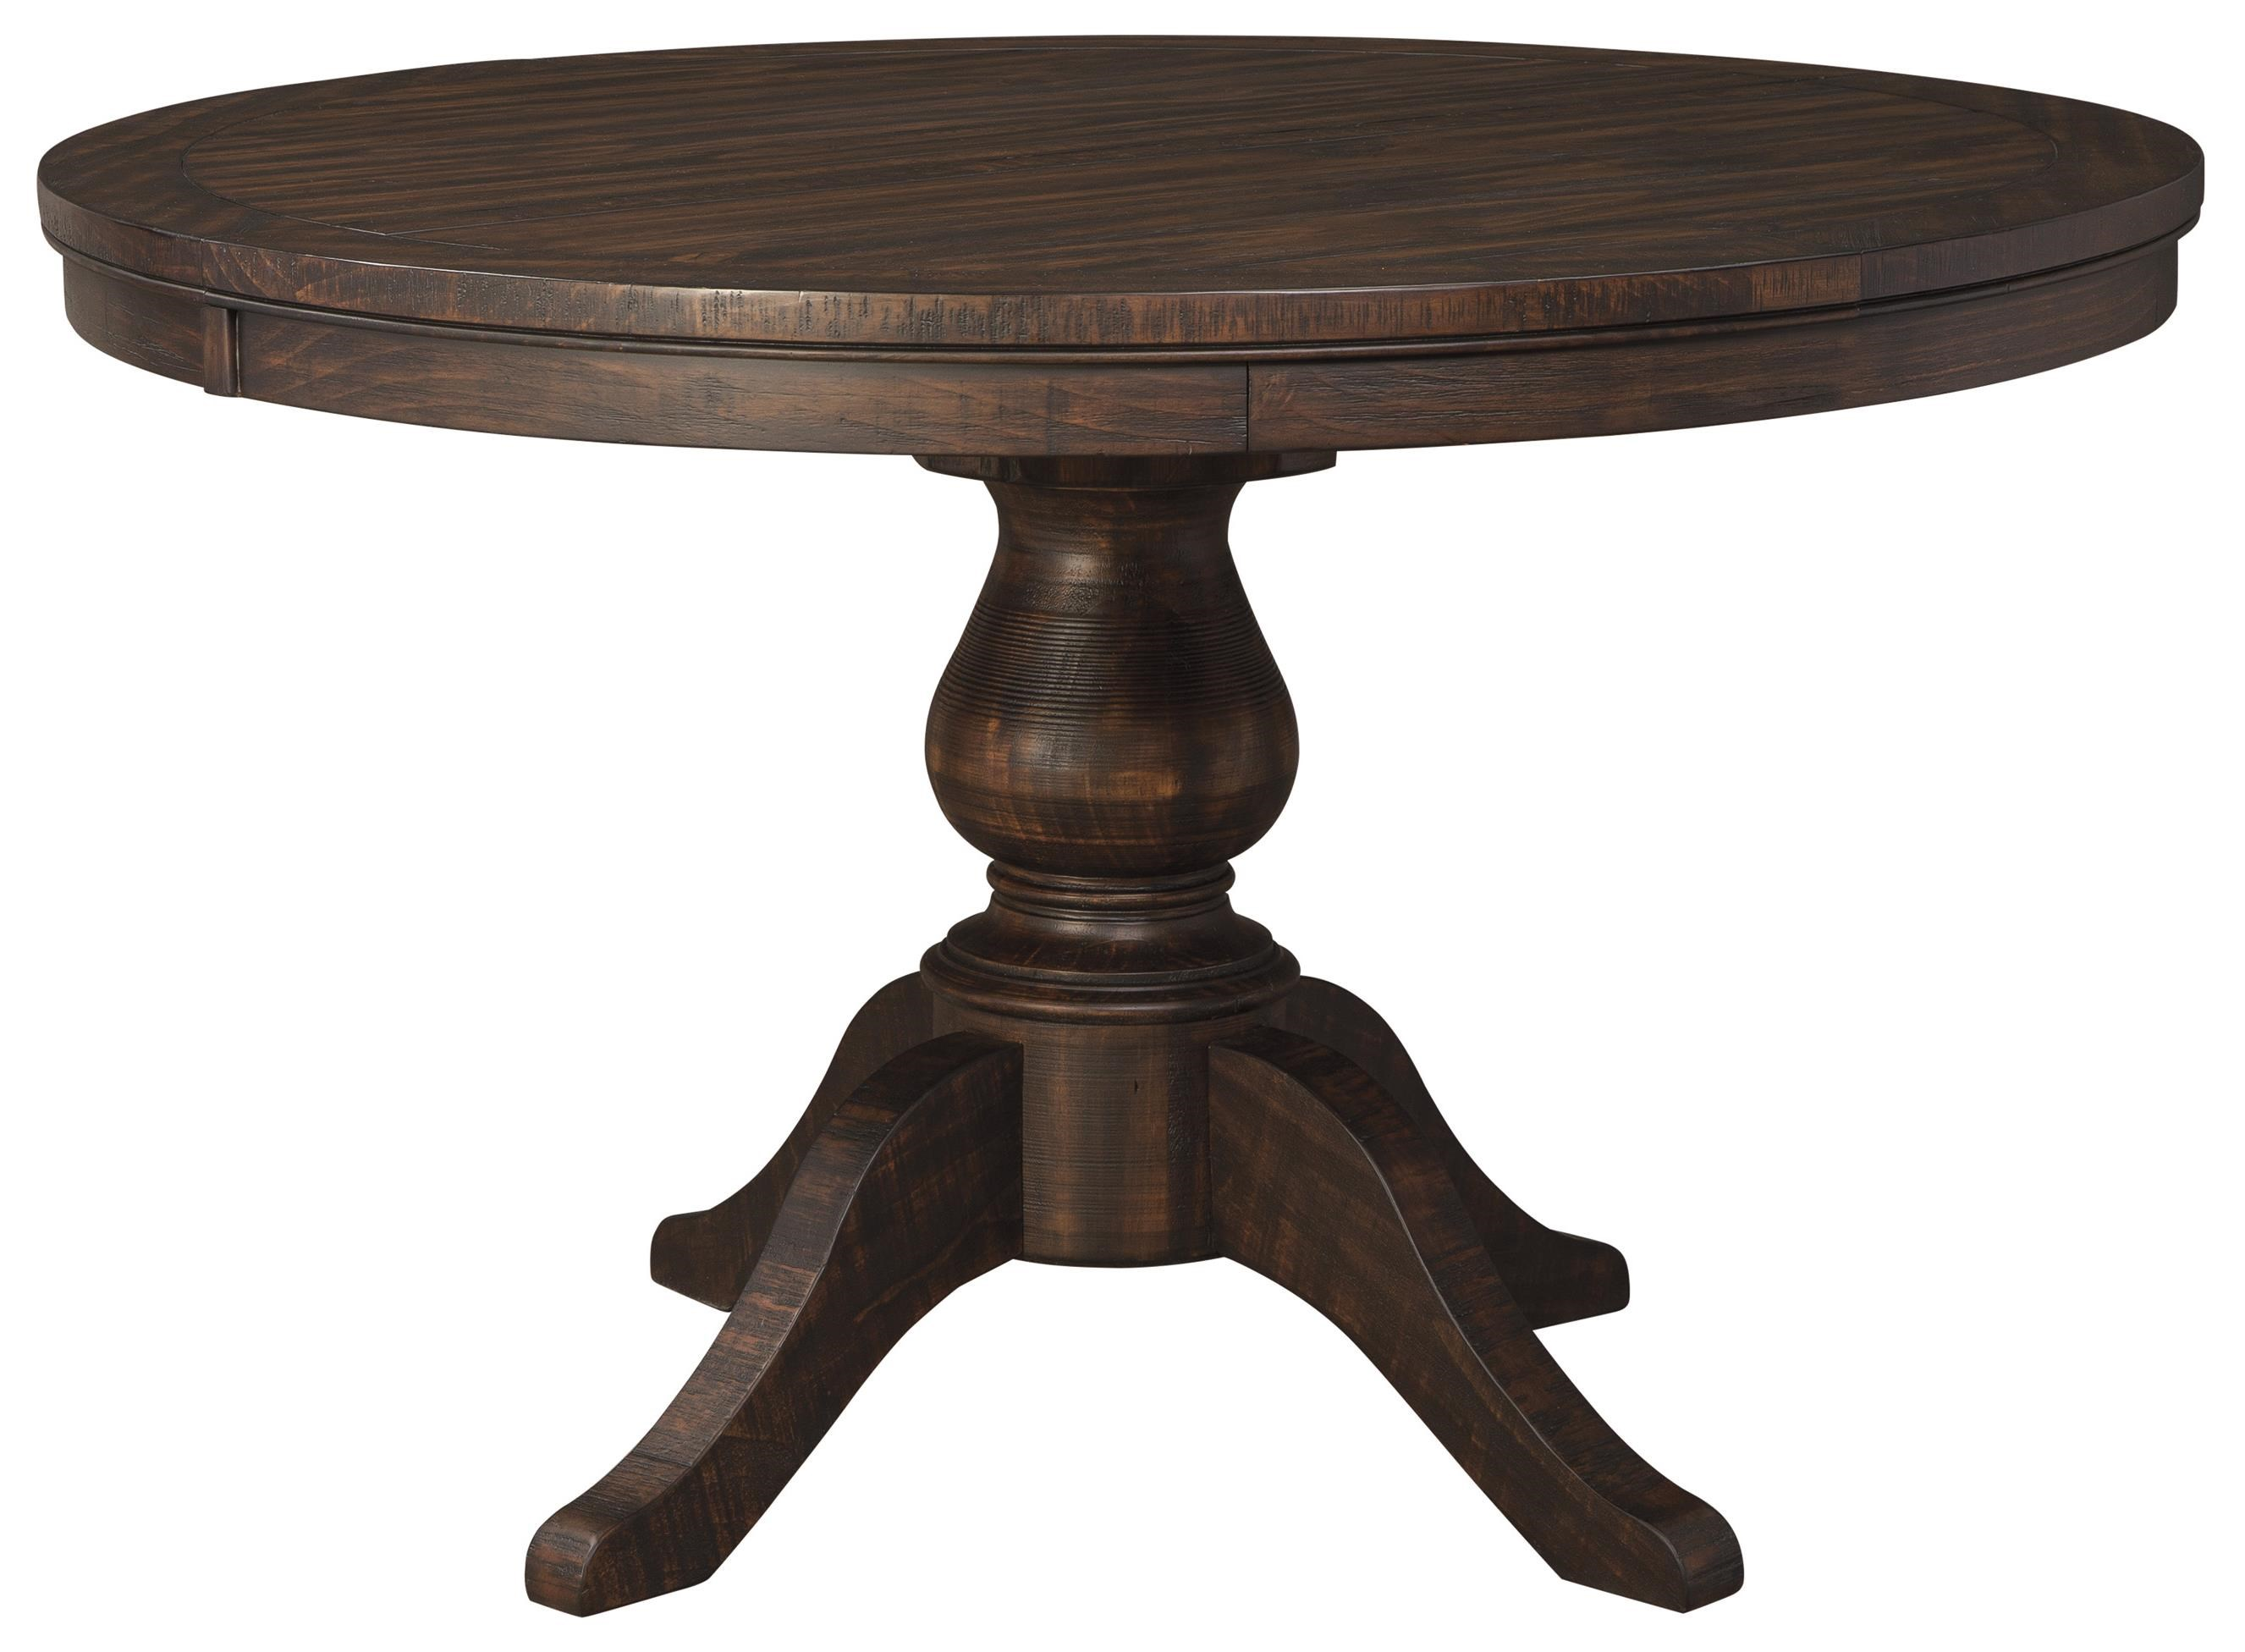 Round Dining Table With Extensions Trudell Solid Wood Pine Round Dining Room Pedestal Extension Table By Ashley Signature Design At Dunk Bright Furniture